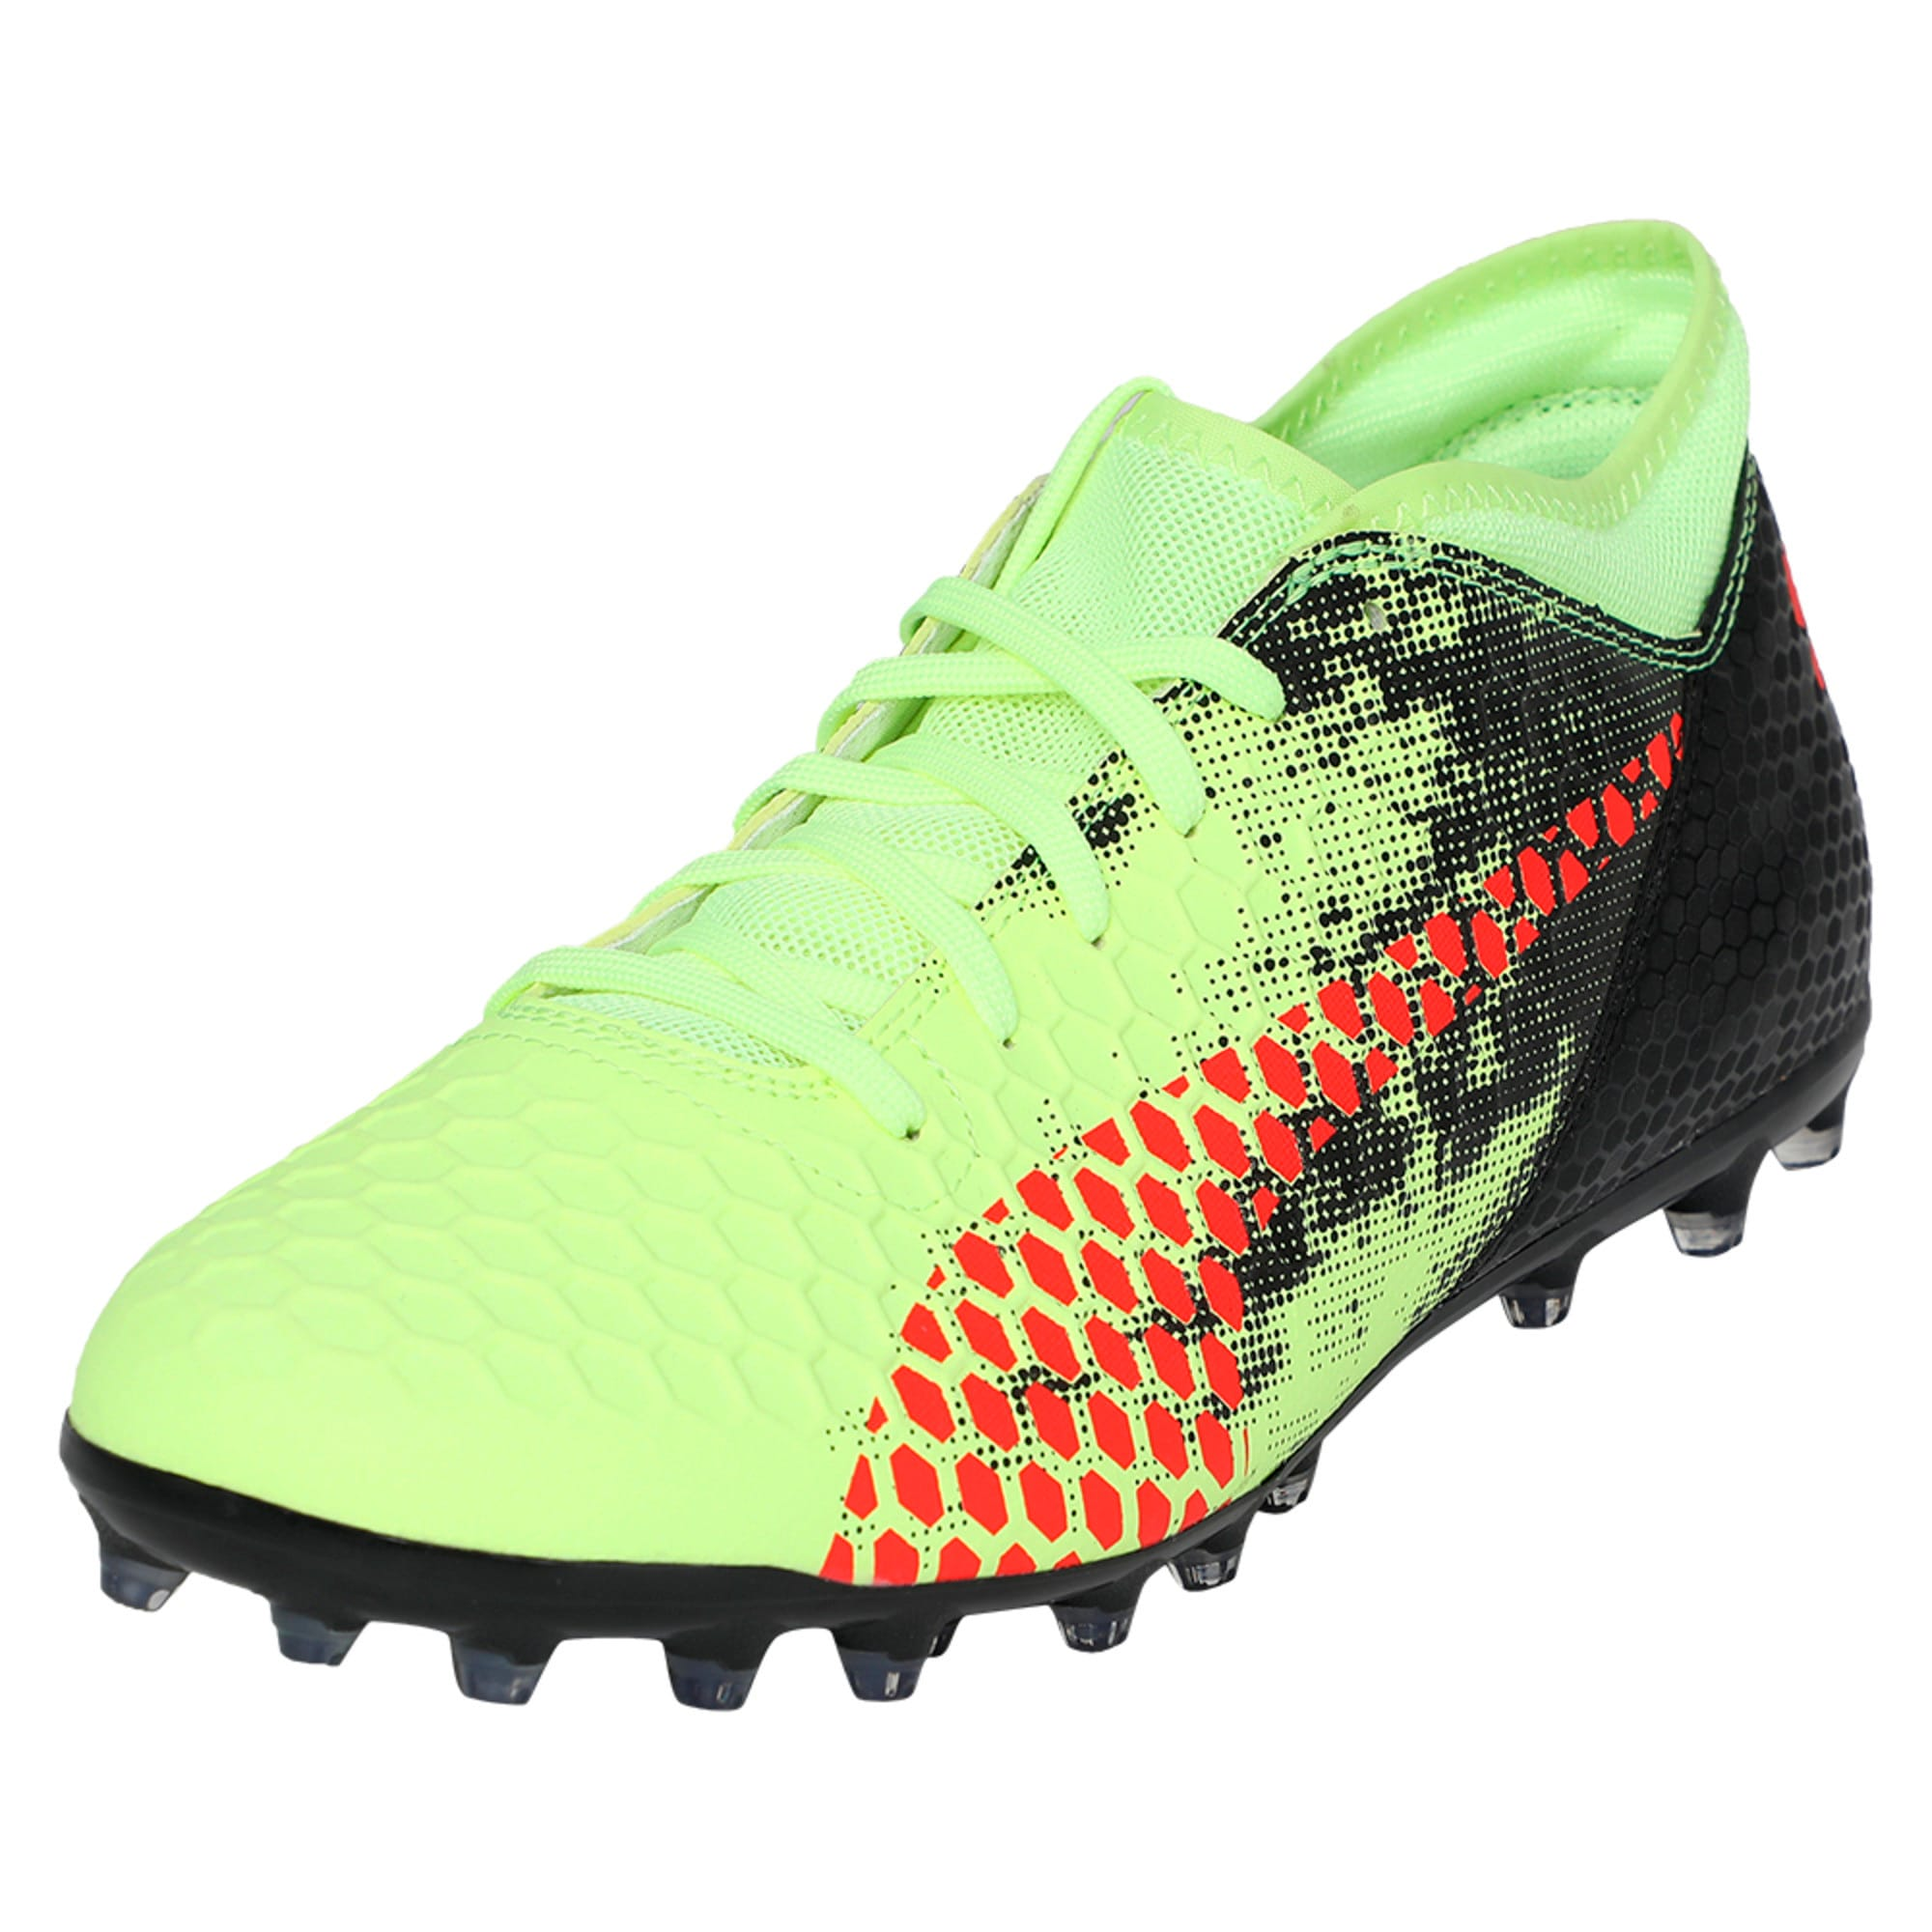 Thumbnail 1 of FUTURE 18.4 MG Men's Football Boots, Yellow-Red-Black, medium-IND